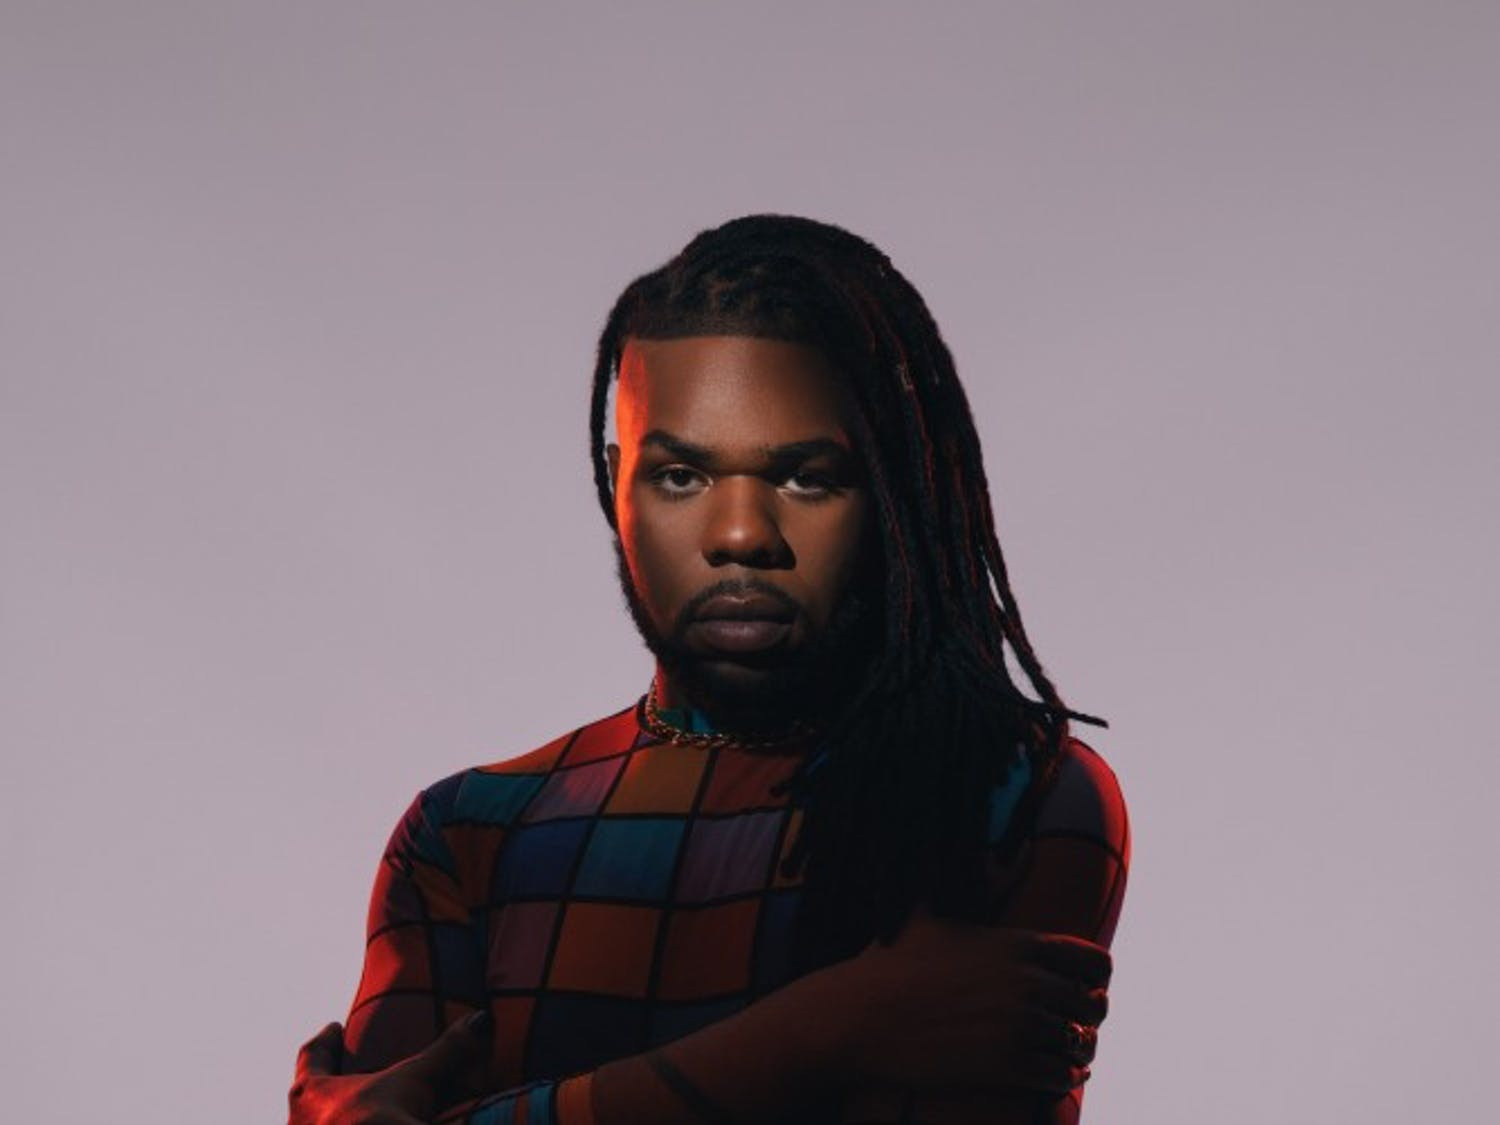 Pop star MNEK talked with The Spectrum before his Velvet Underground performance this month.